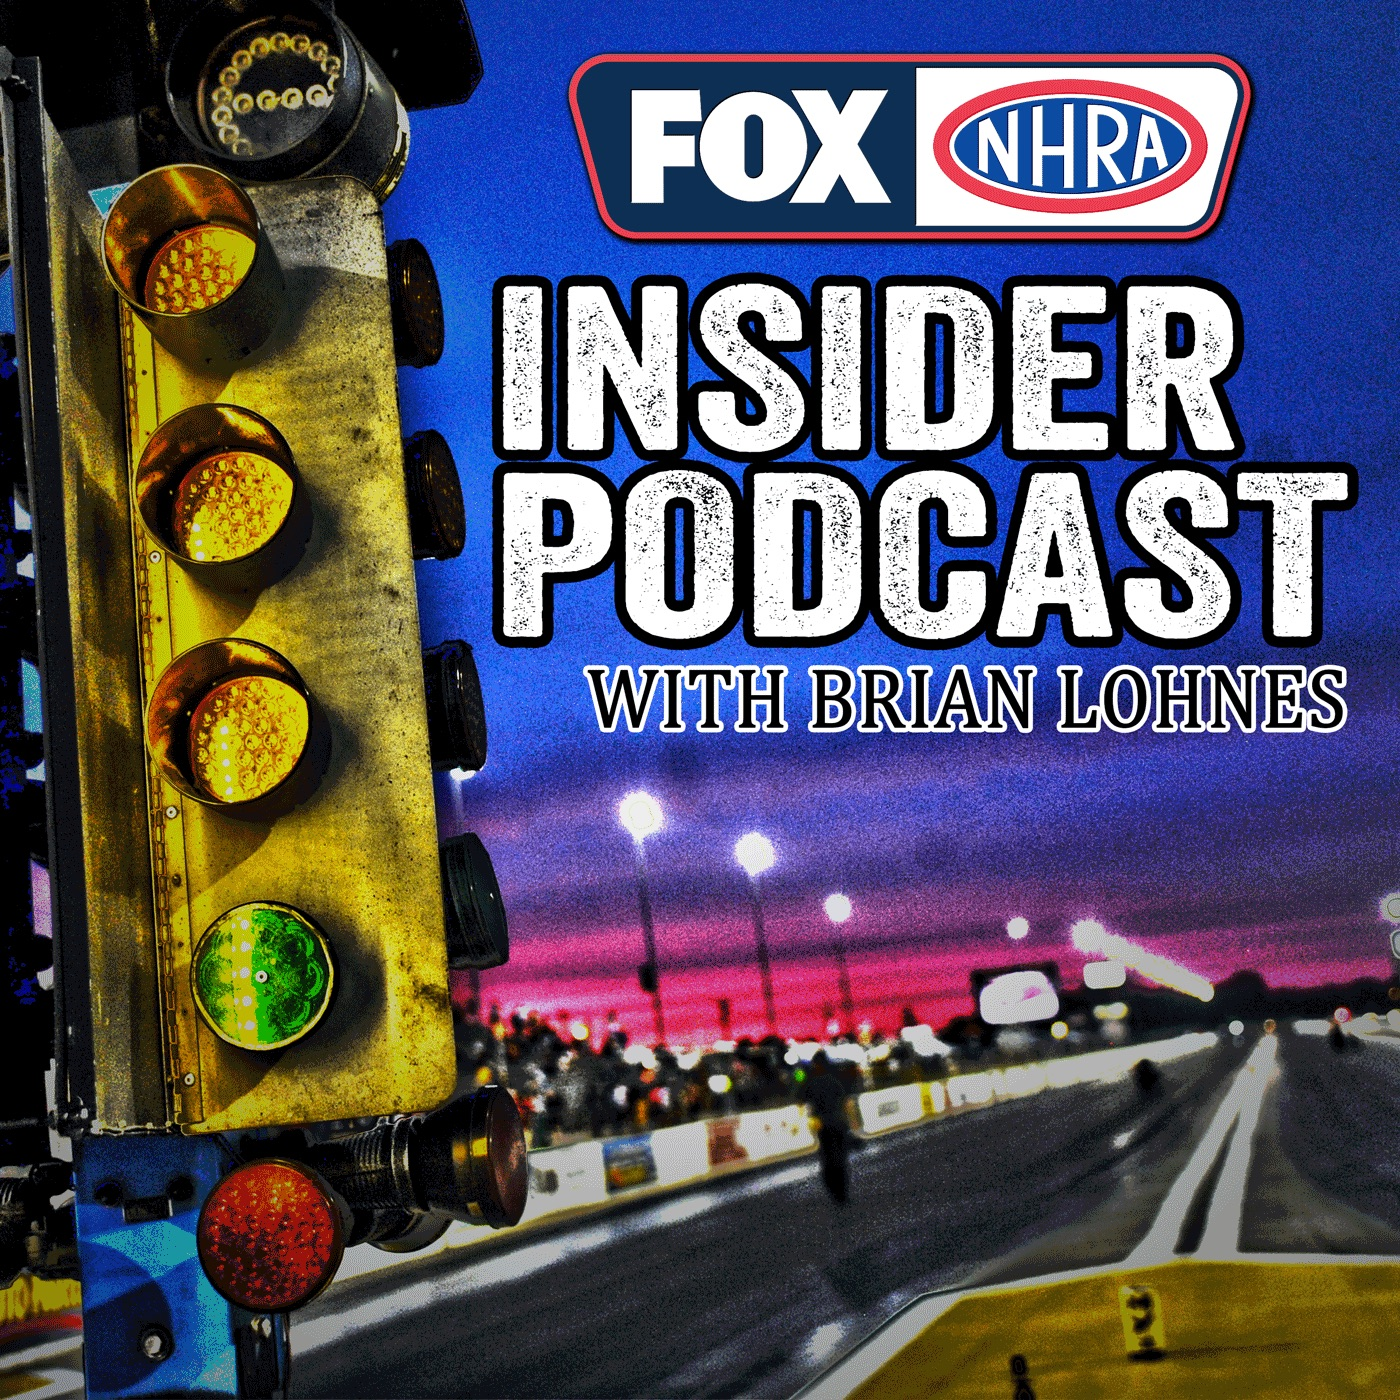 NHRA Insider Podcast: The Raw Truth On TV, Pro Stock, and 2019's Most Dominating Pro Stock Motorcycle Racer